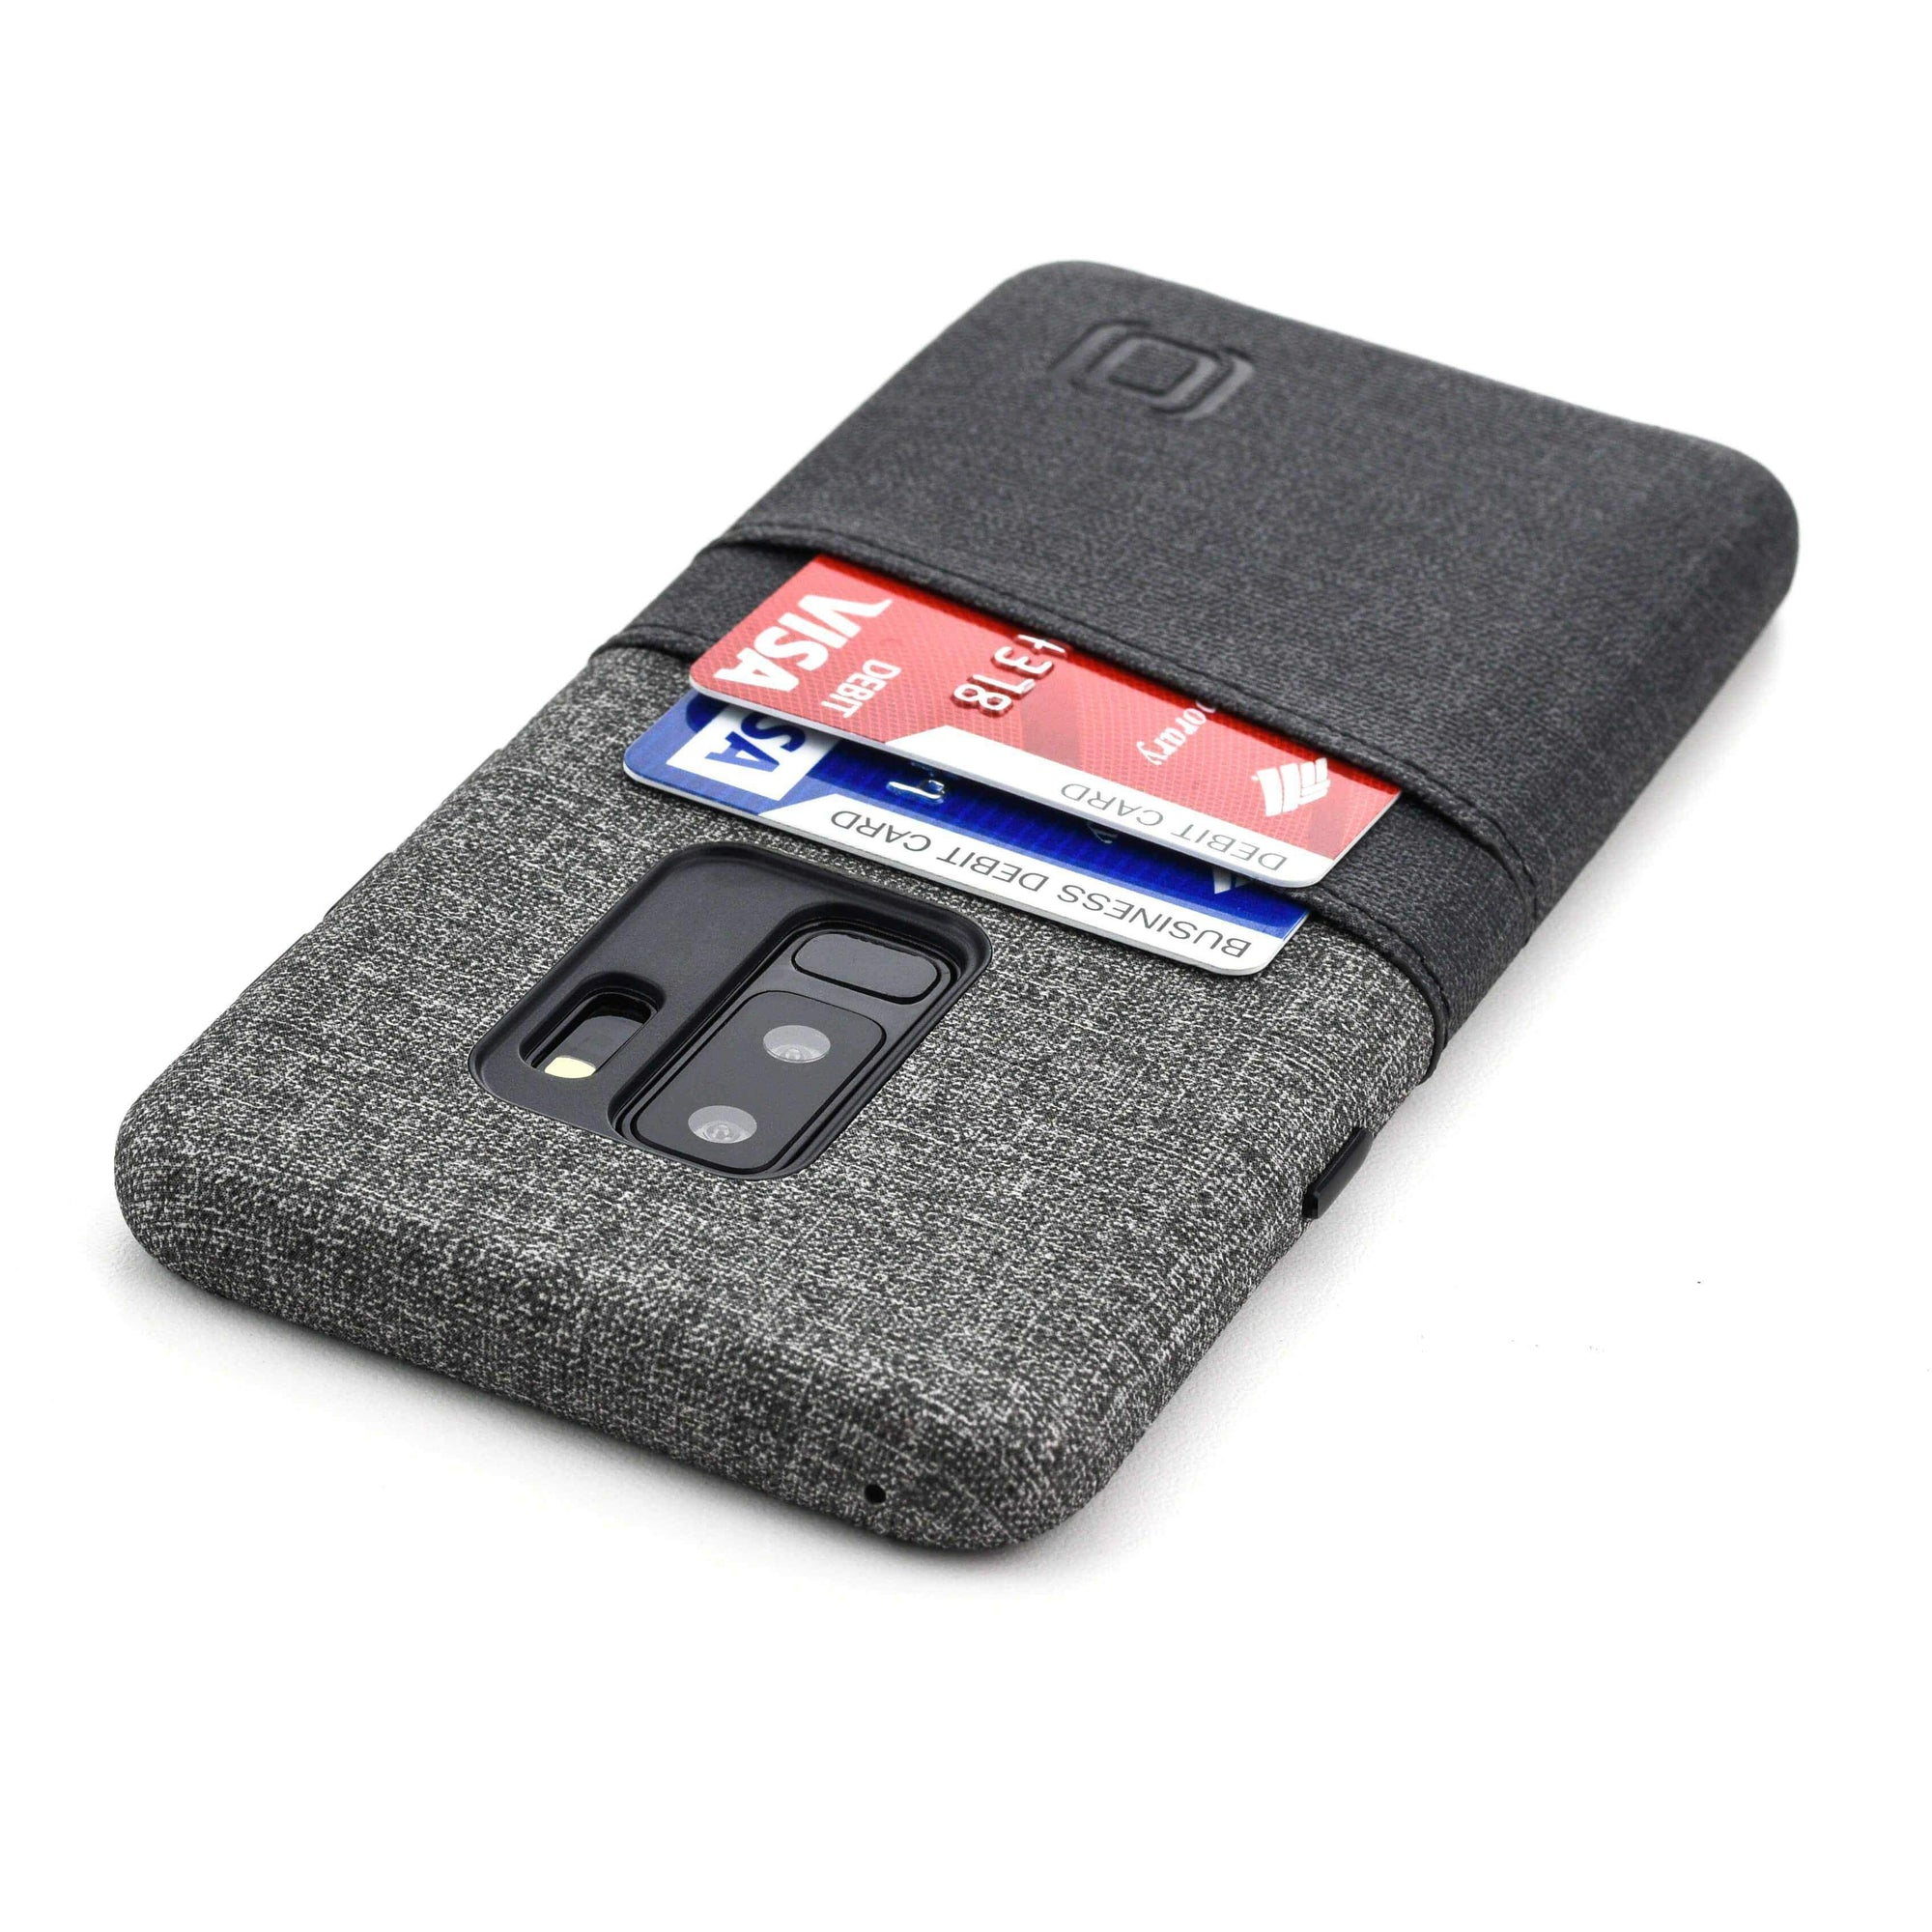 Luxe Samsung Galaxy S9 and S9+ 2 Card Wallet Case Samsung Case Dockem